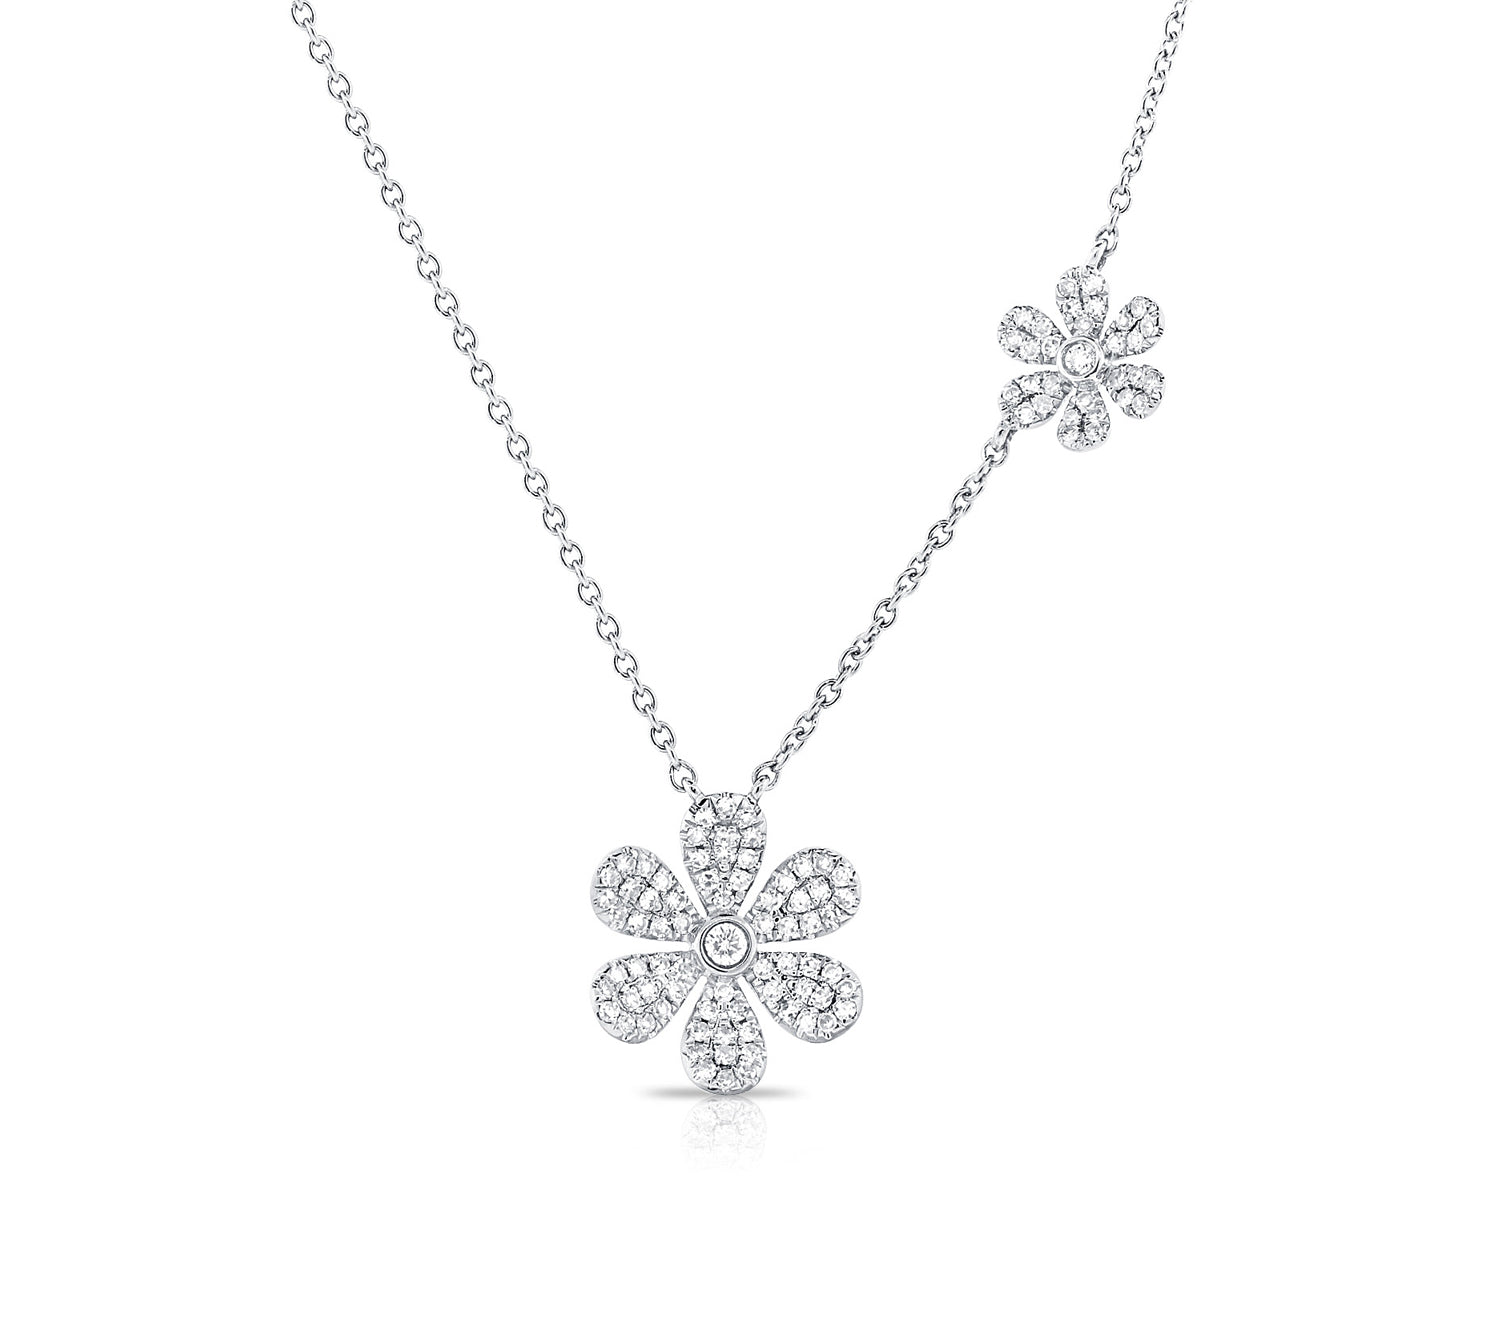 Pave Diamond Flower Necklace in White Gold